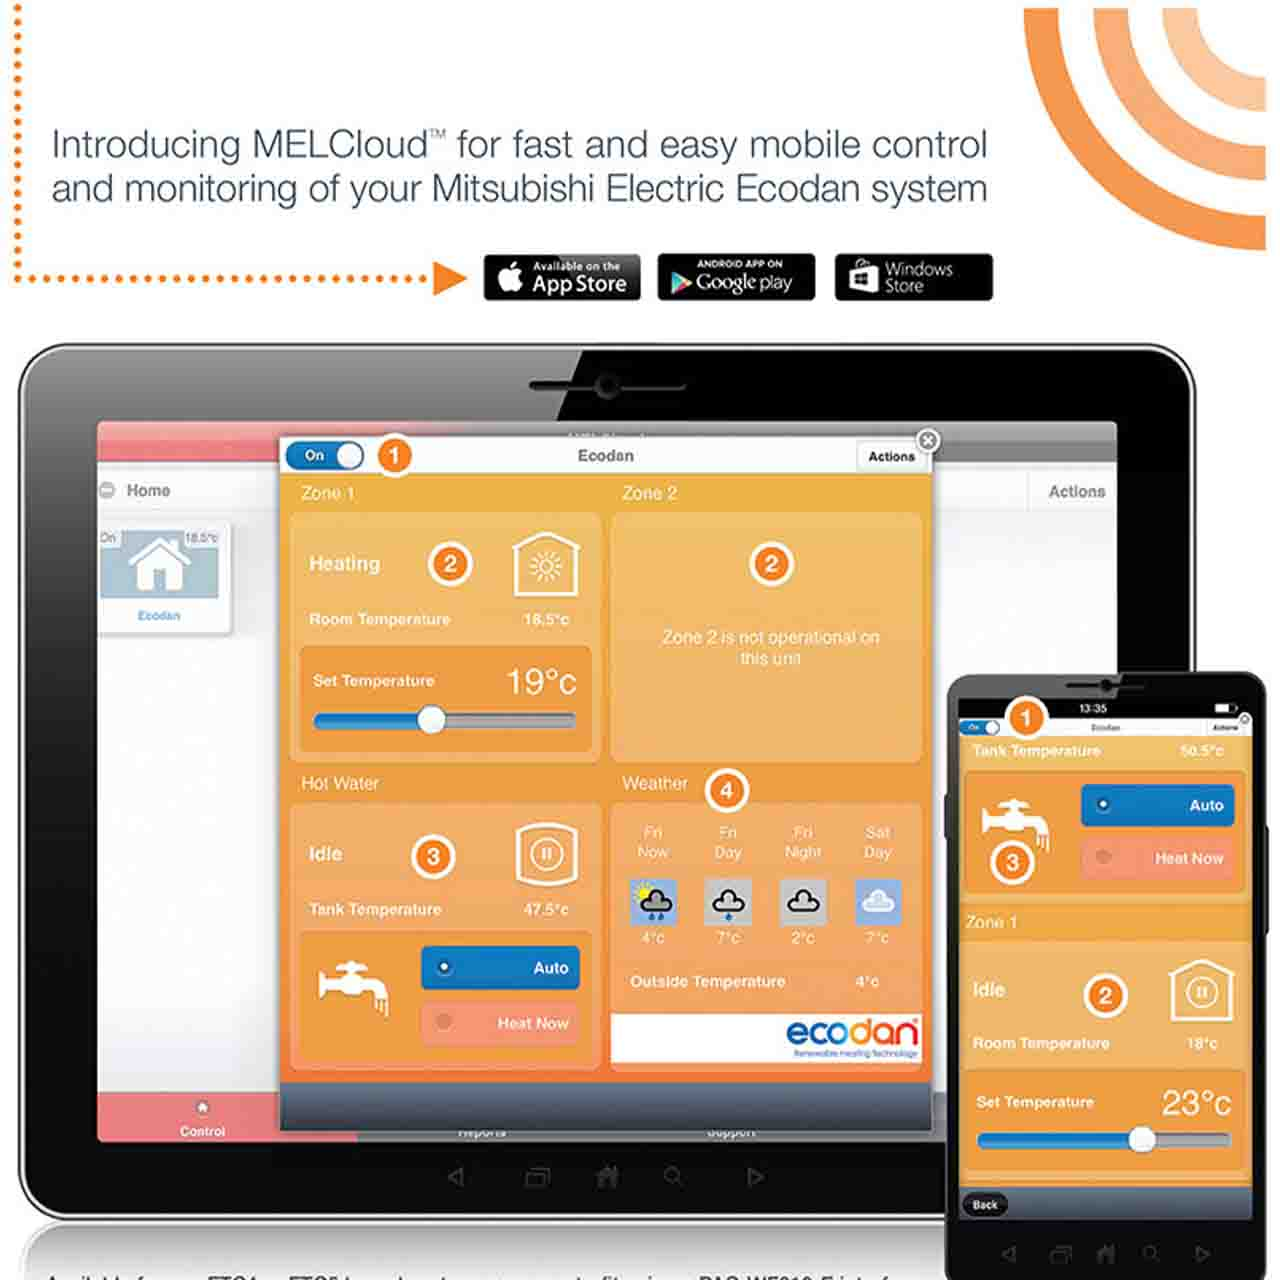 The ECODAN MelCloud app